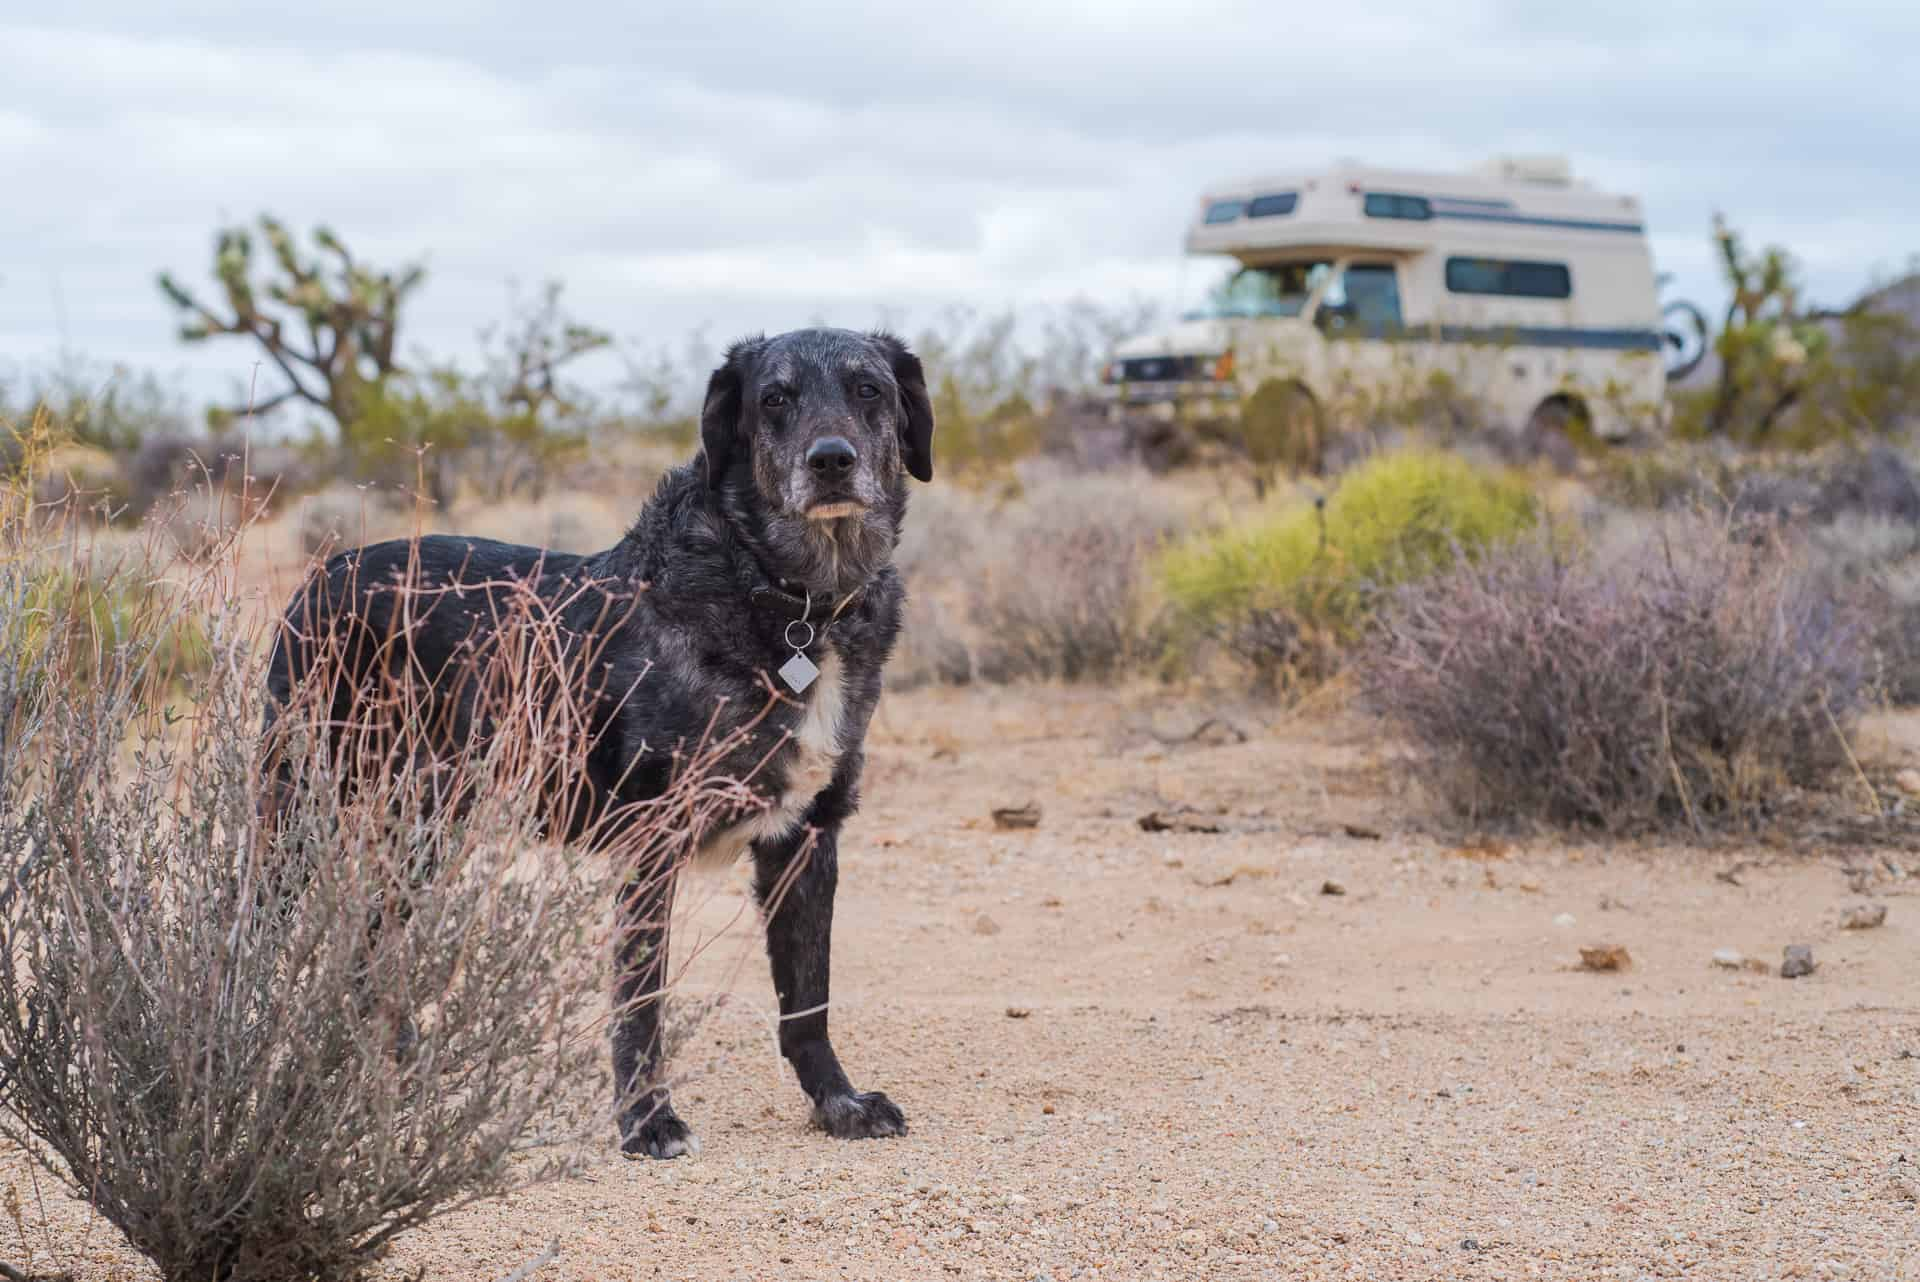 A dog standing in the desert next to a camper